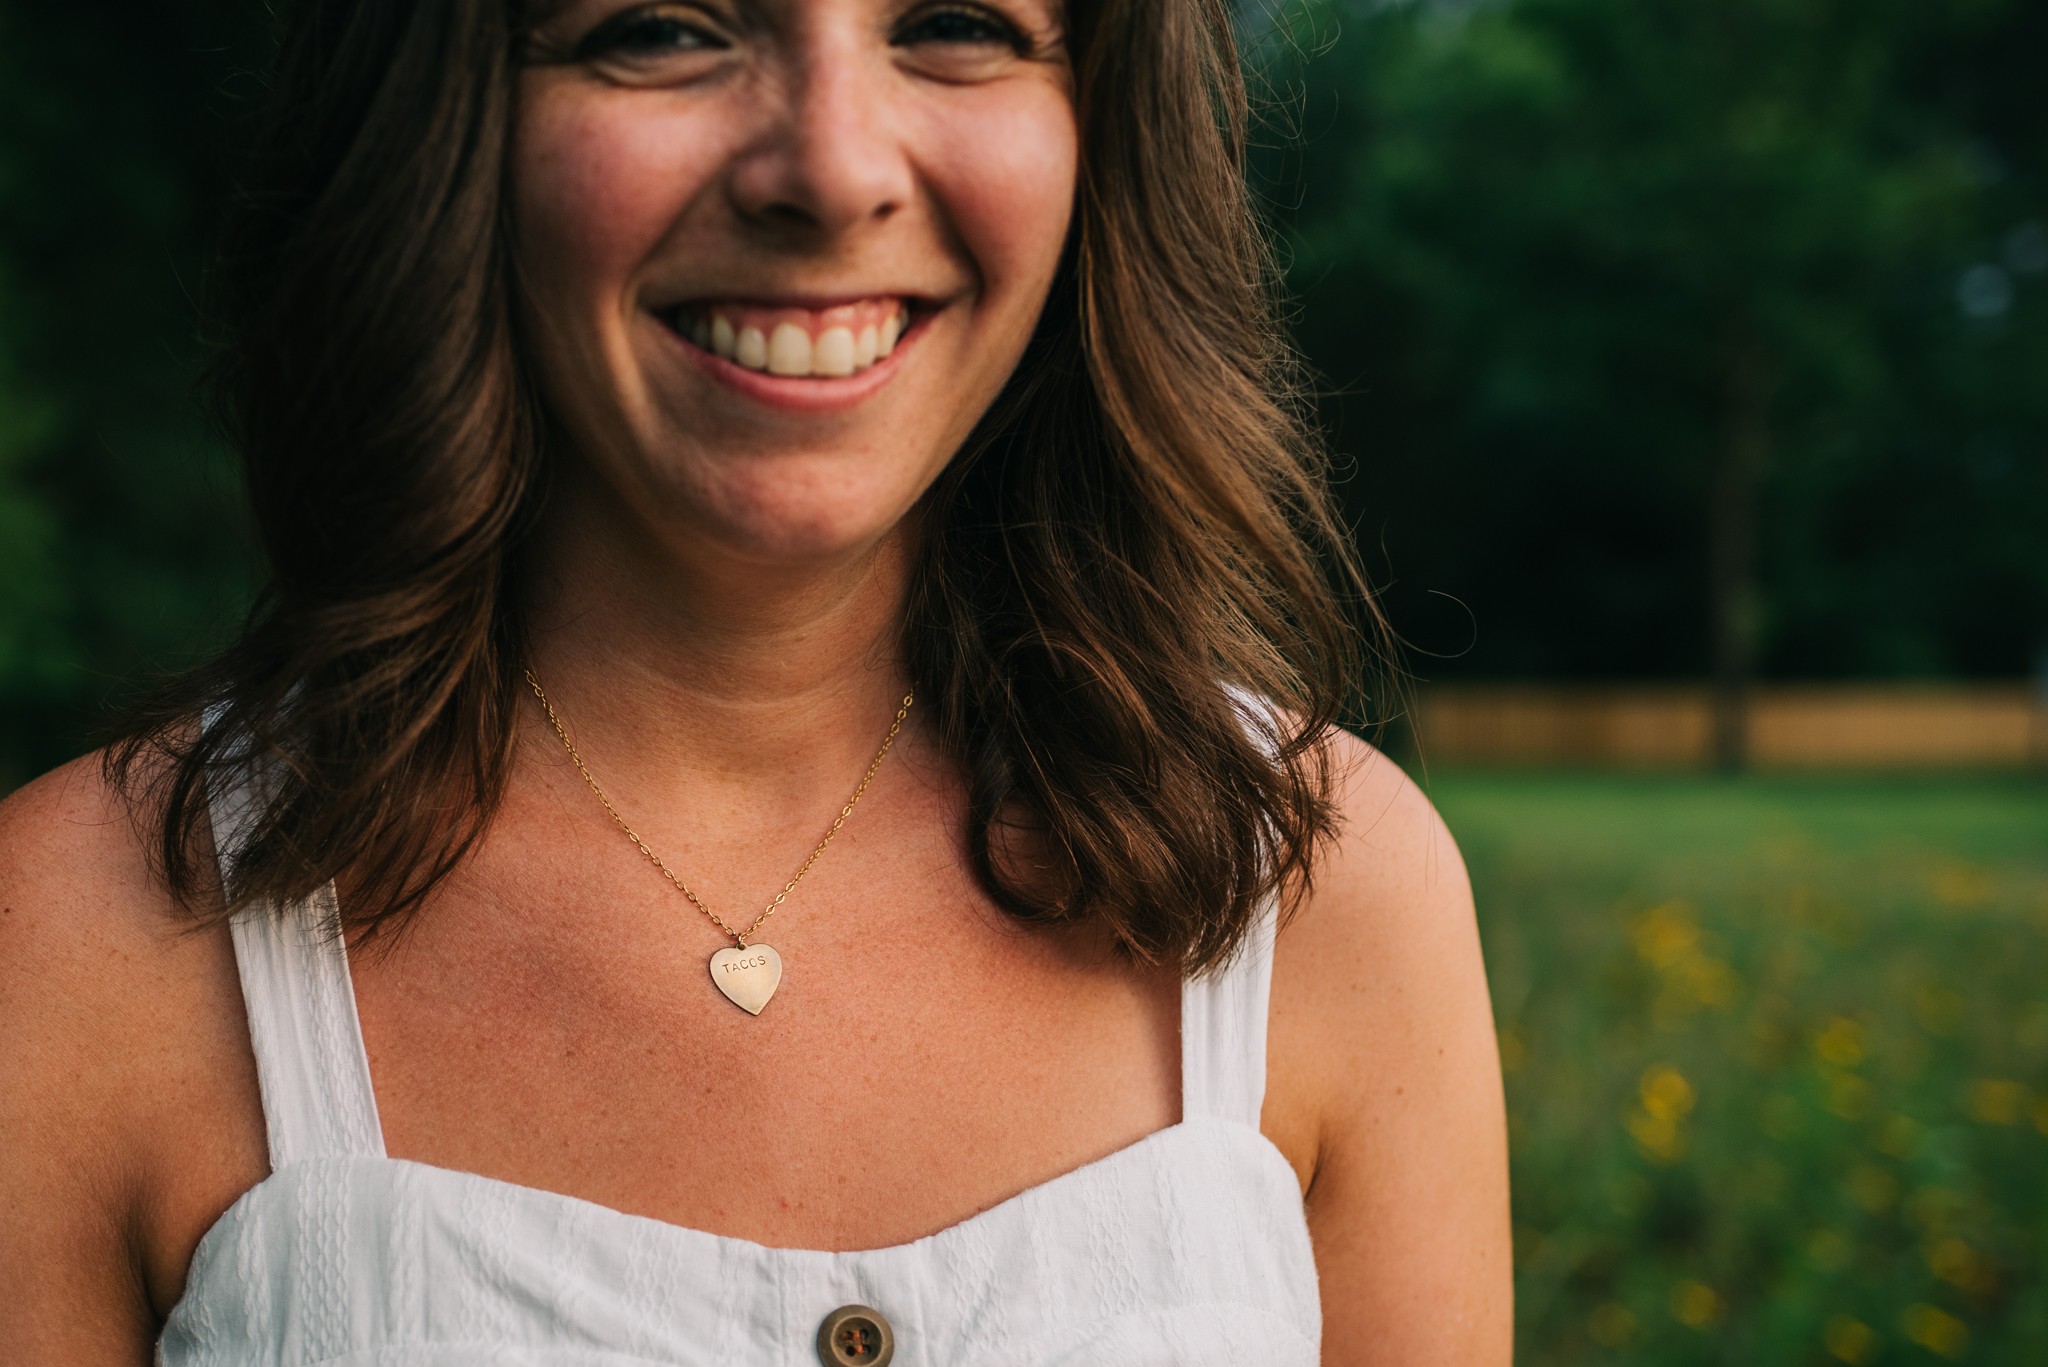 The bride wore a tacos necklace during her engagement pictures with Rose Trail Images at Horseshoe Park in Wake Forest, North Carolina.